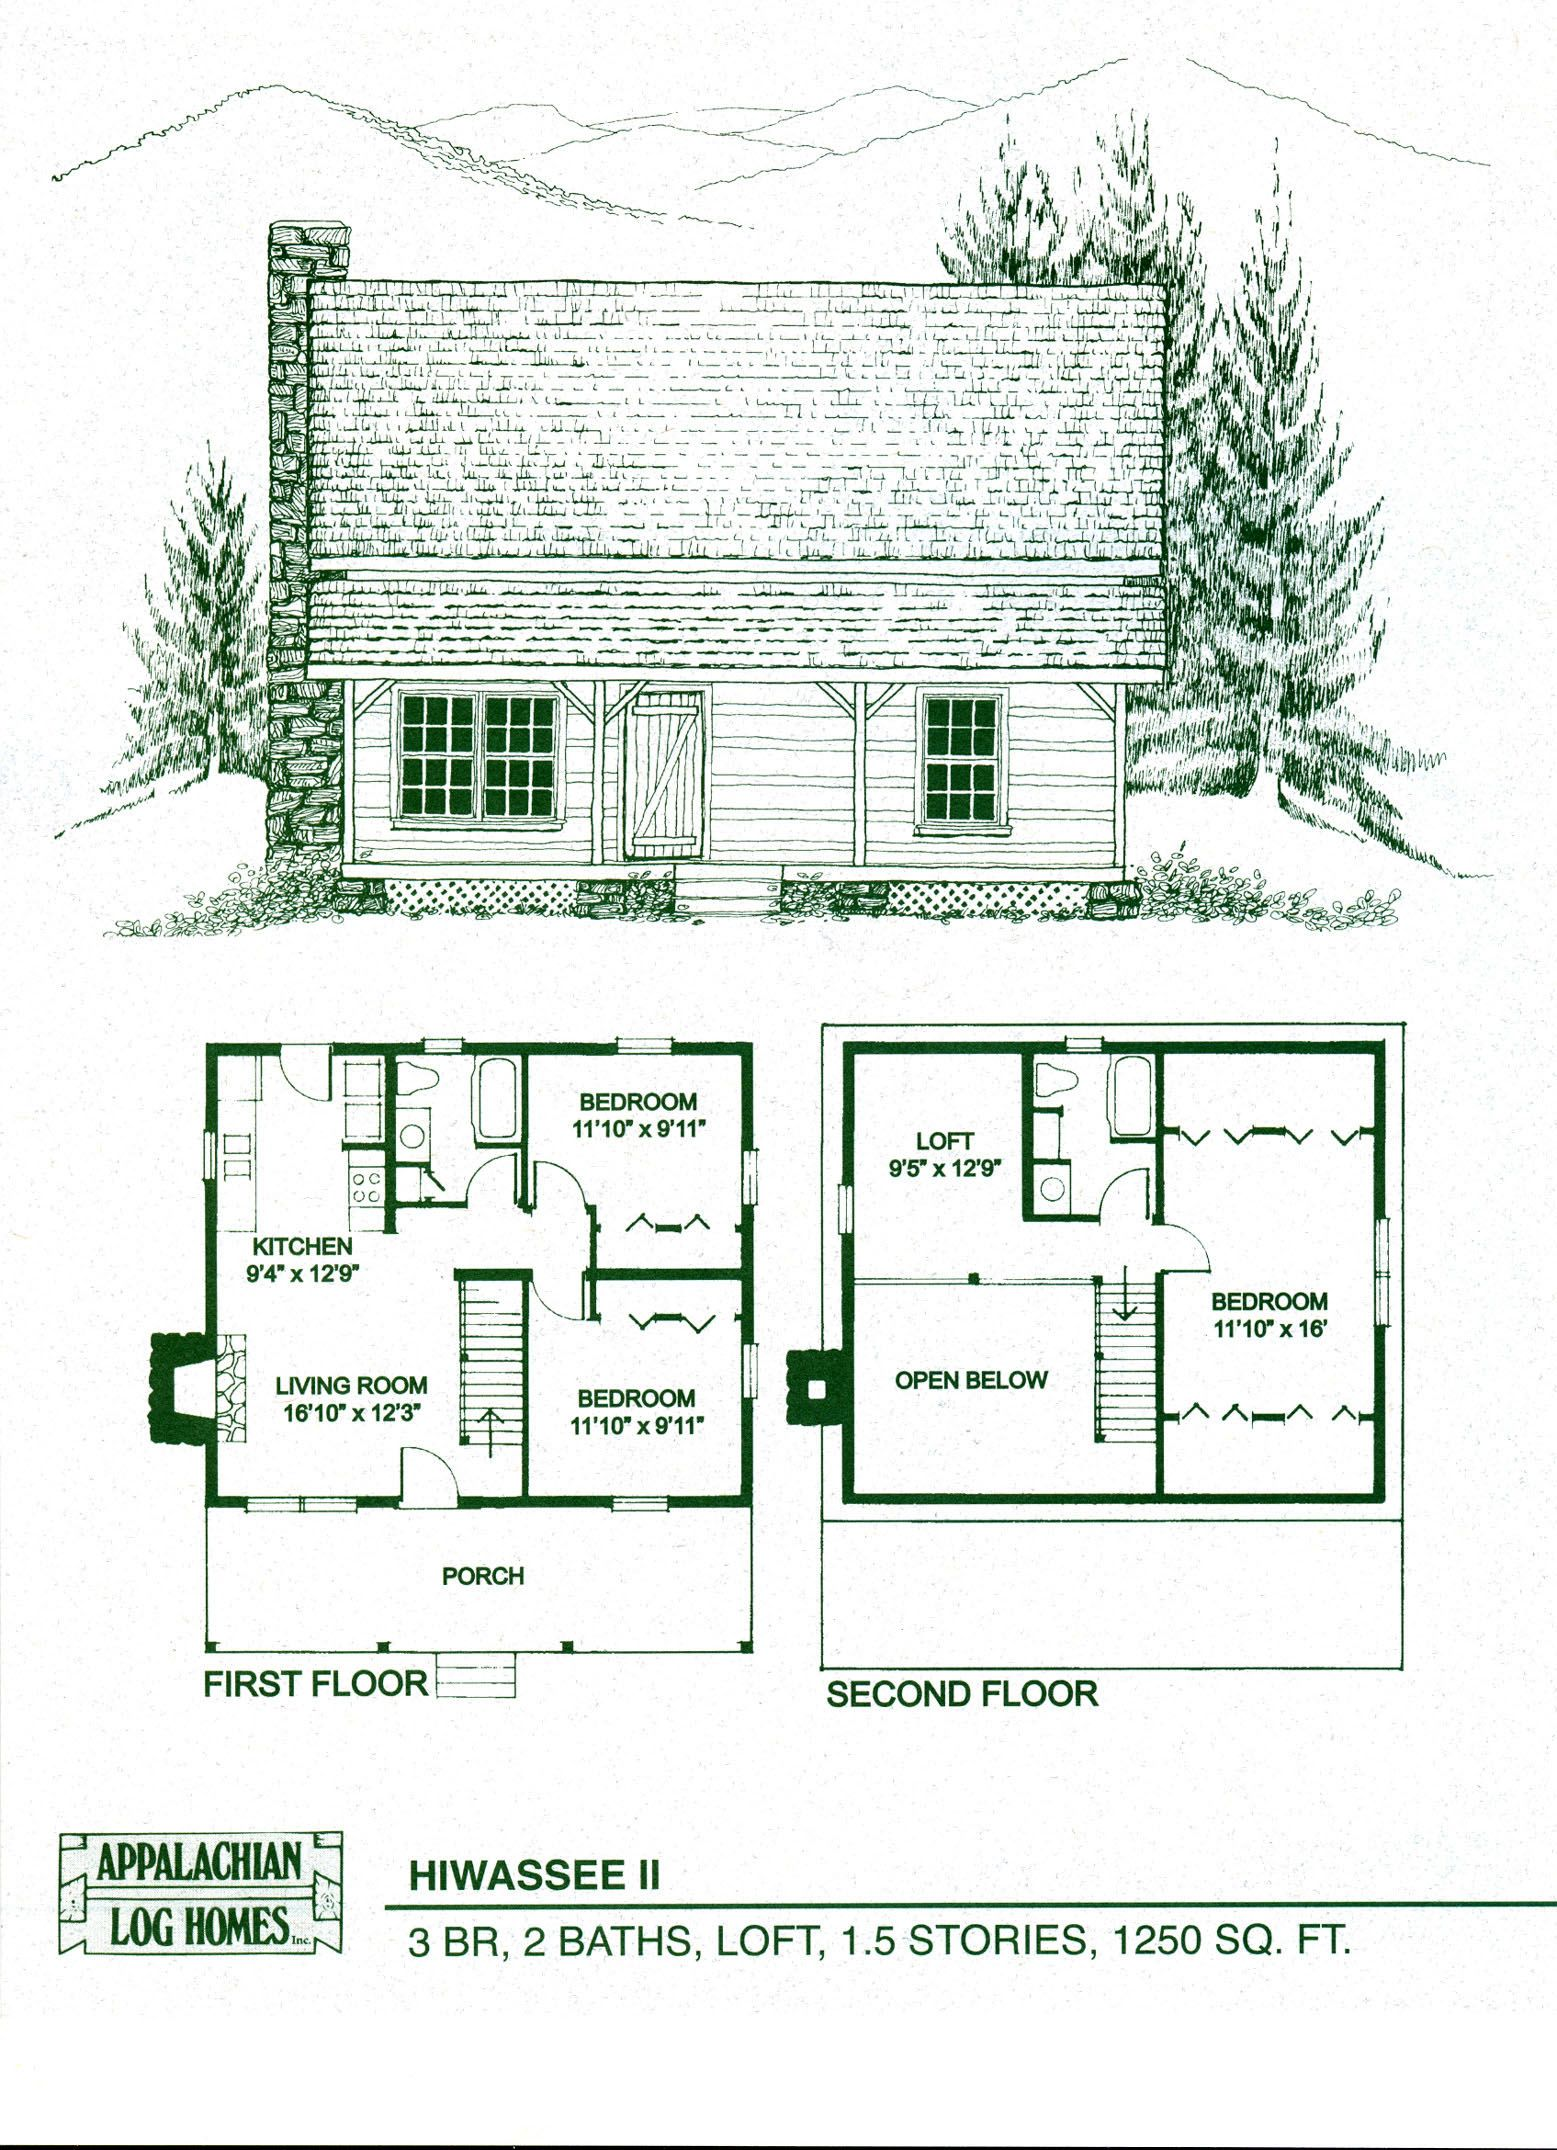 Log home floor plans log cabin kits appalachian log for Log cabin ranch floor plans